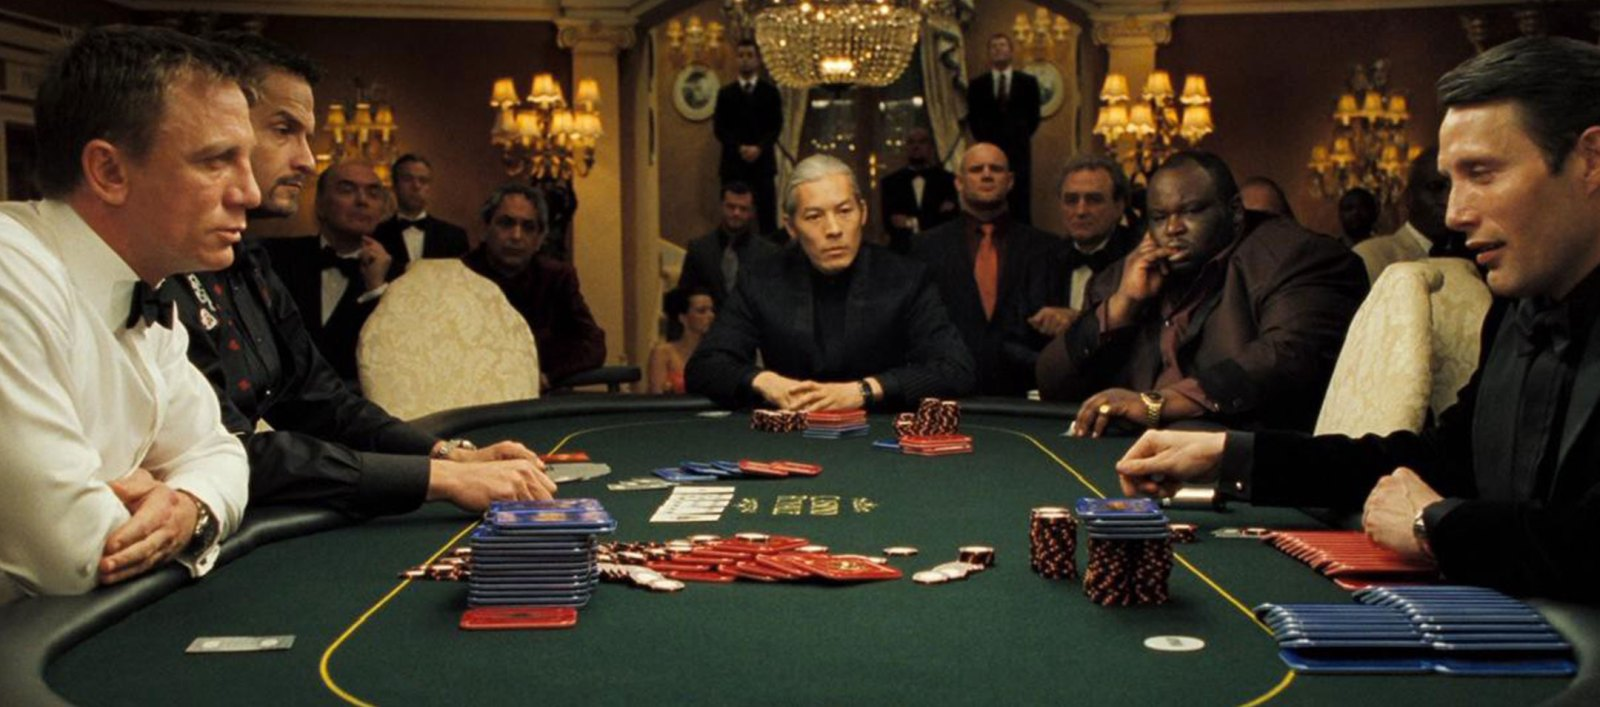 The 30 Best Gambling Movies // ONE37pm